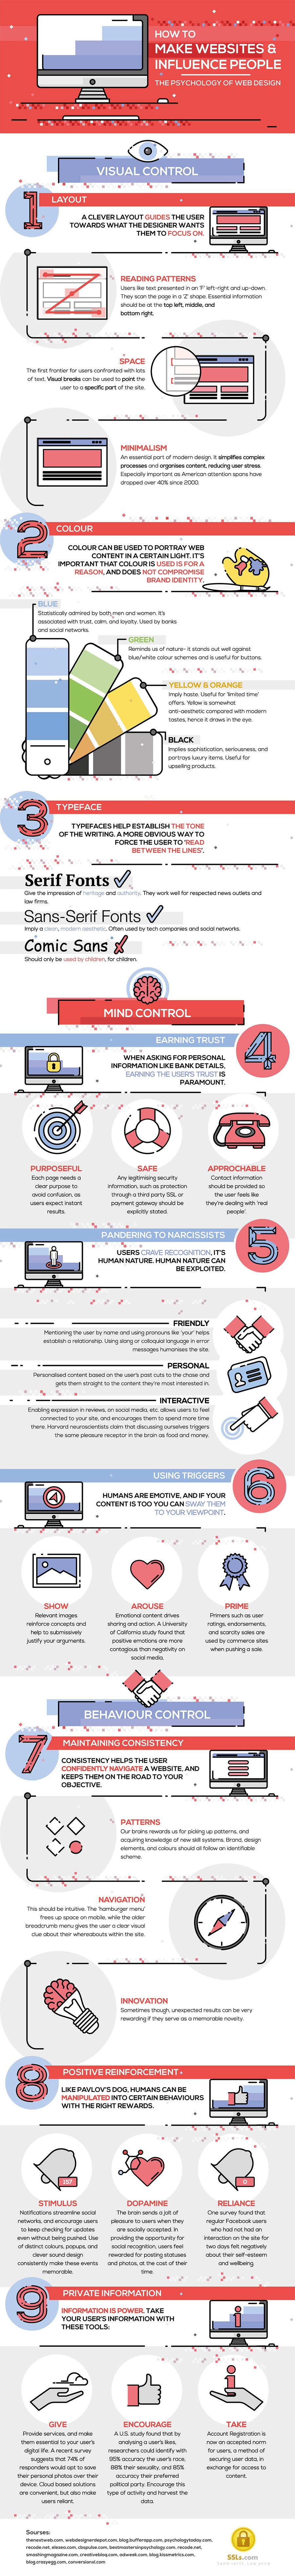 How to Make a Website that Influences People: 9 Web Design Psychology Tips [Infographic]